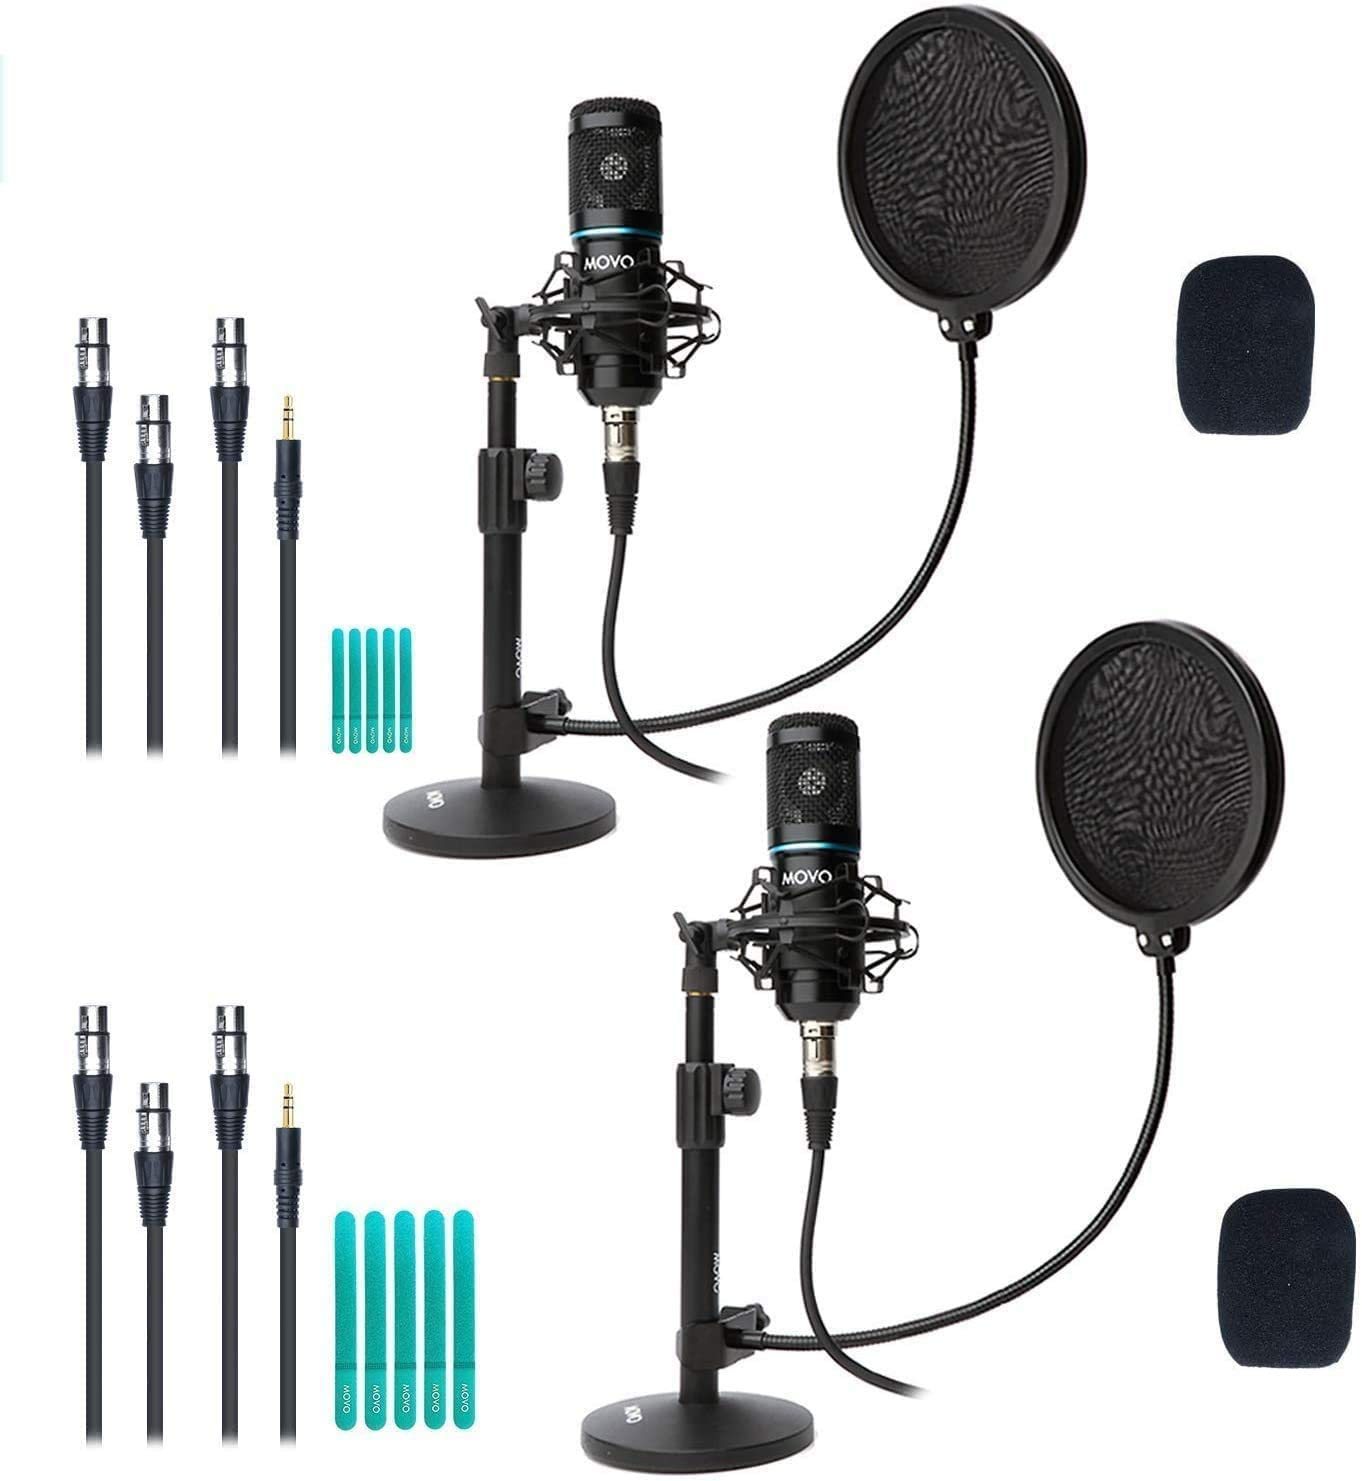 Bombing new work Movo 2-Pack Universal XLR Equipm Condenser Podcasting Indianapolis Mall Microphone